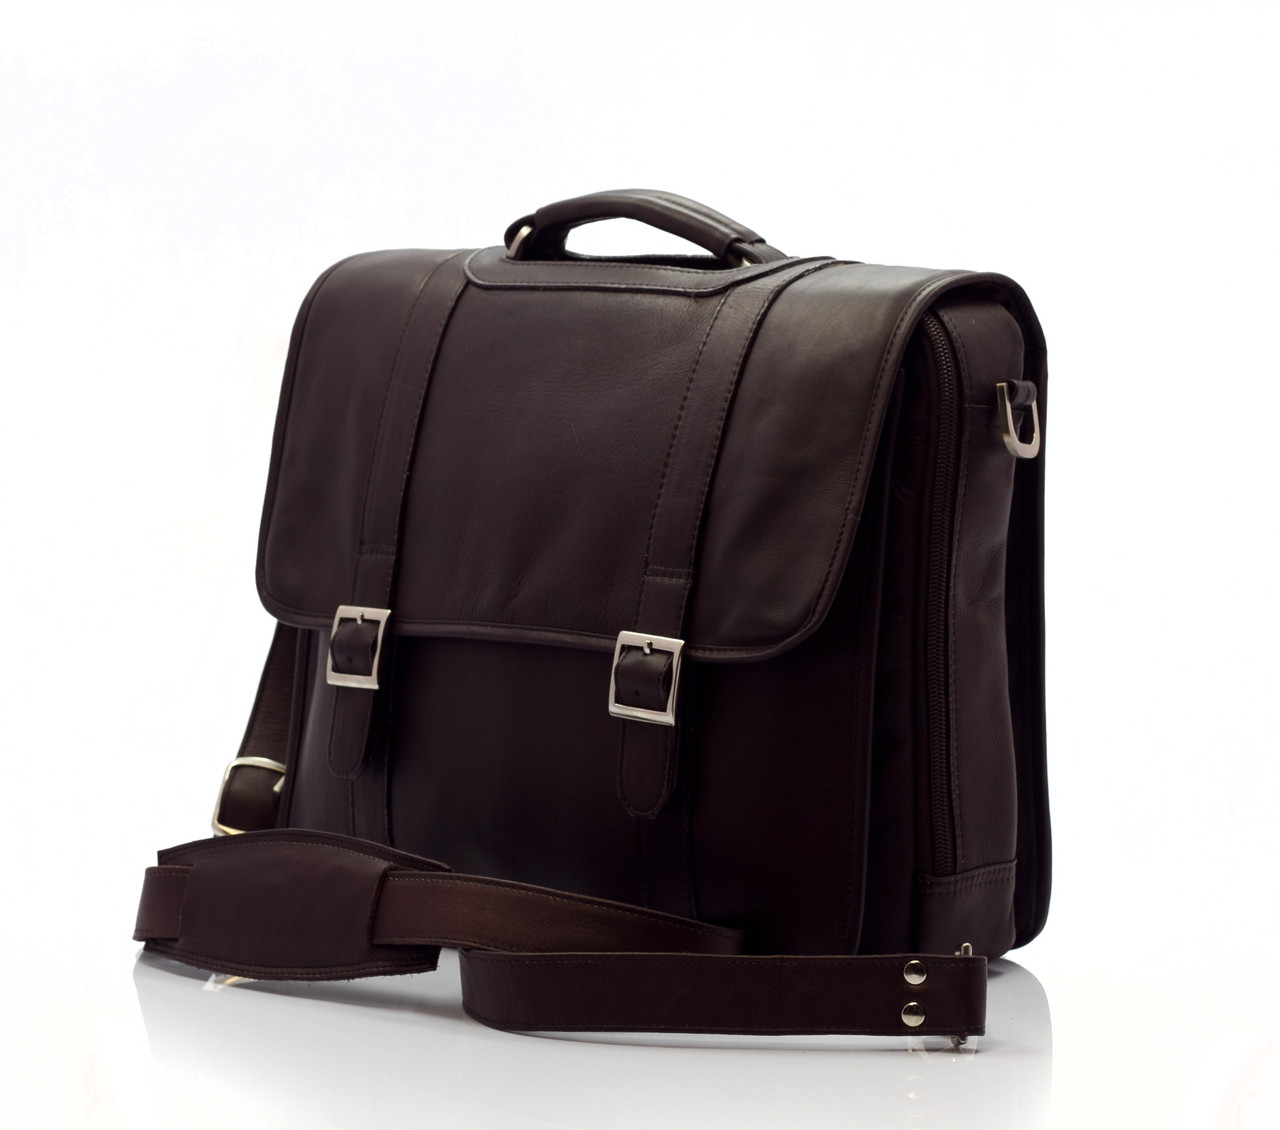 Muiska - Lucas - Colombian Leather Laptop Messenger Bag - Front View, Brown